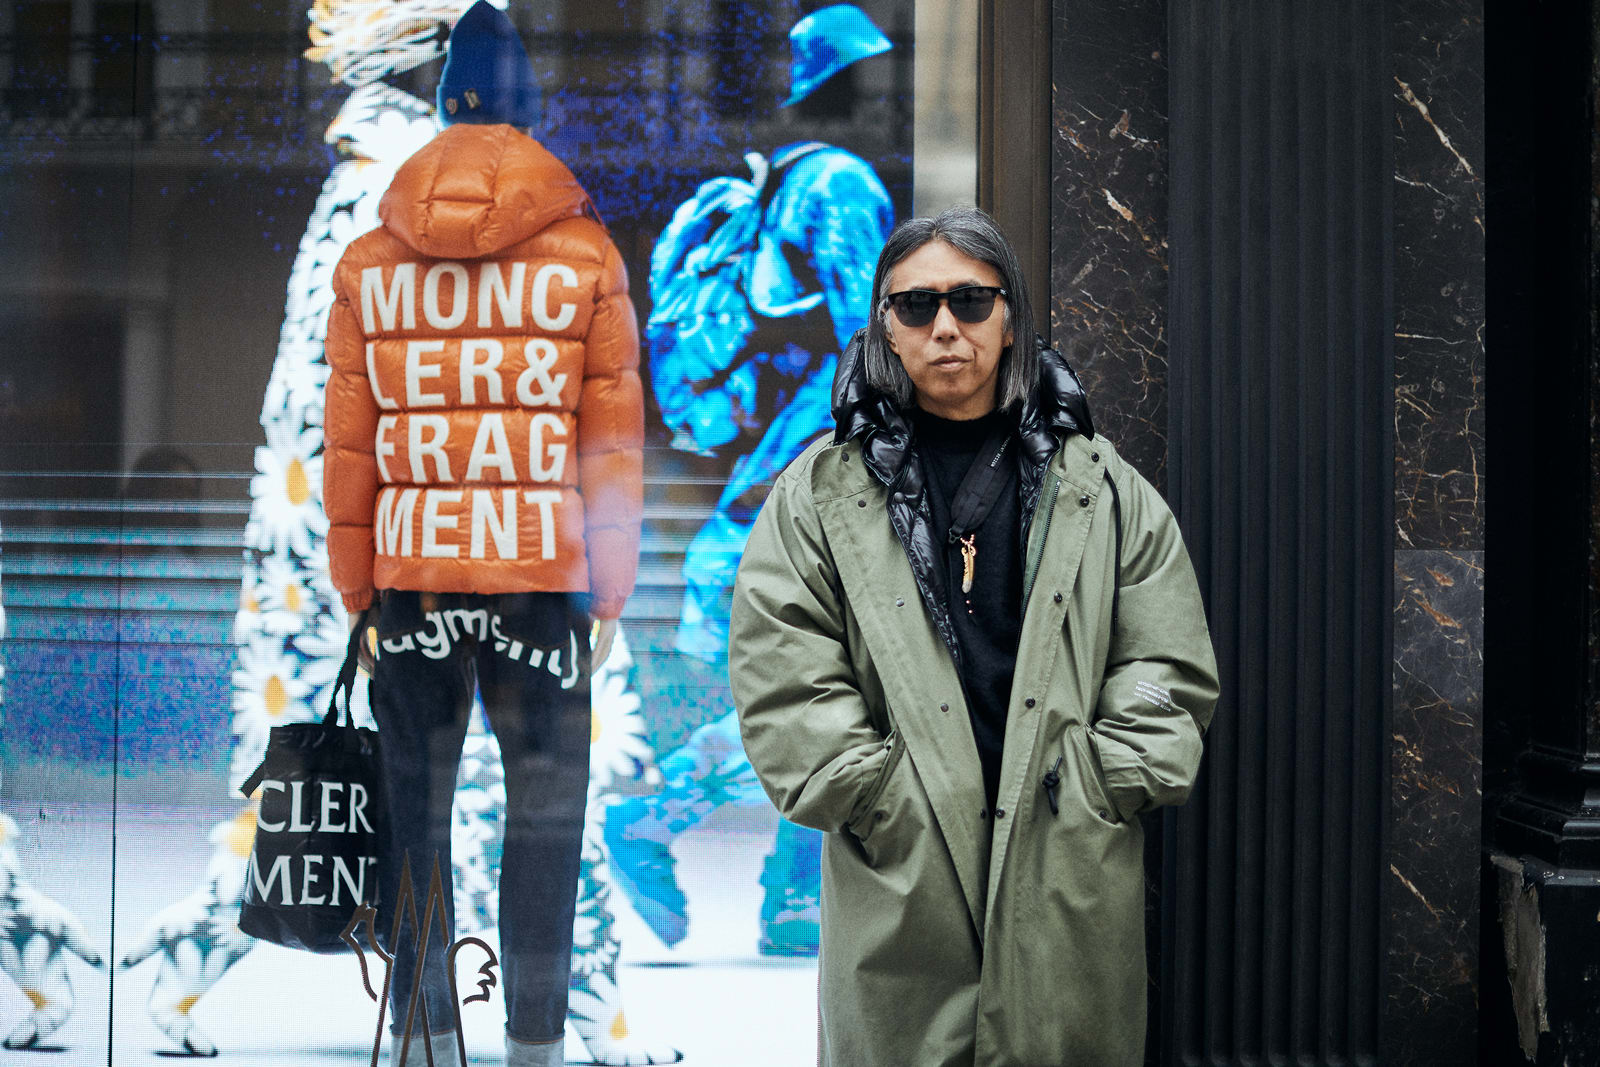 Hiroshi Fujiwara standing outside Moncler store on Bond Street during Moncler Genius World Tour shot by END.